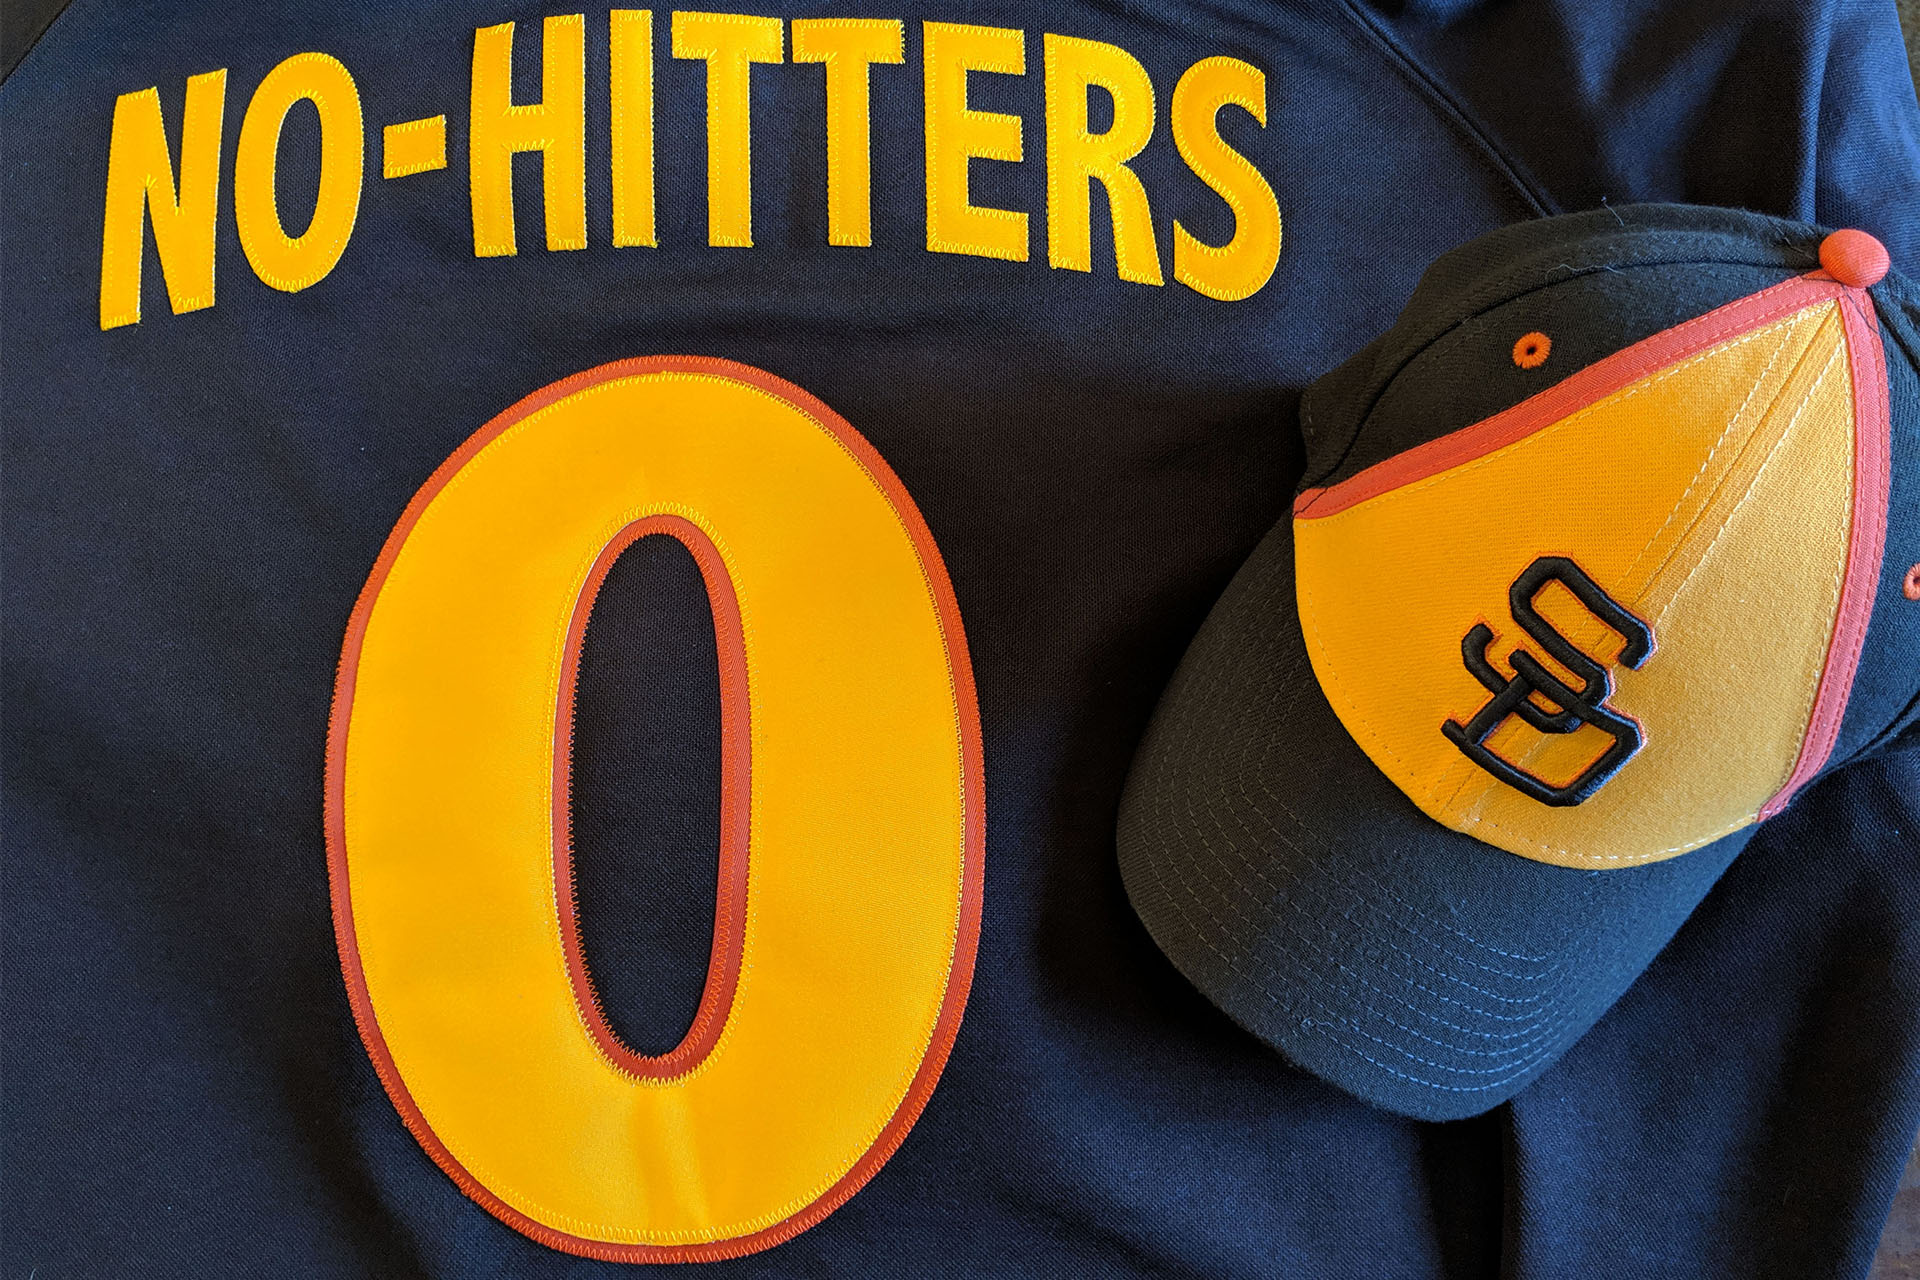 Padres no-hitters jersey